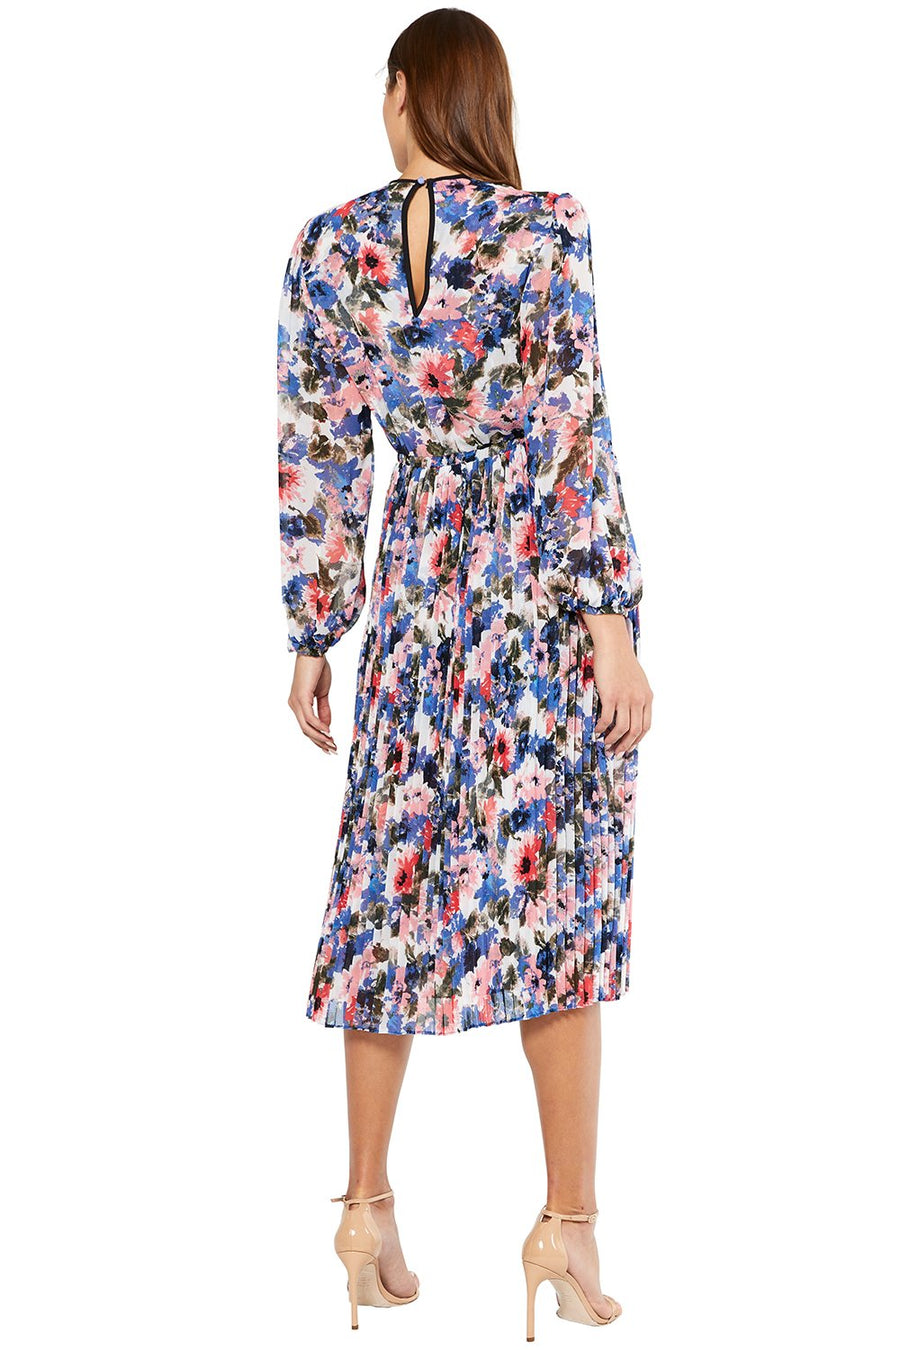 Juliana Dress - Tie Dye Floral - Pavilion